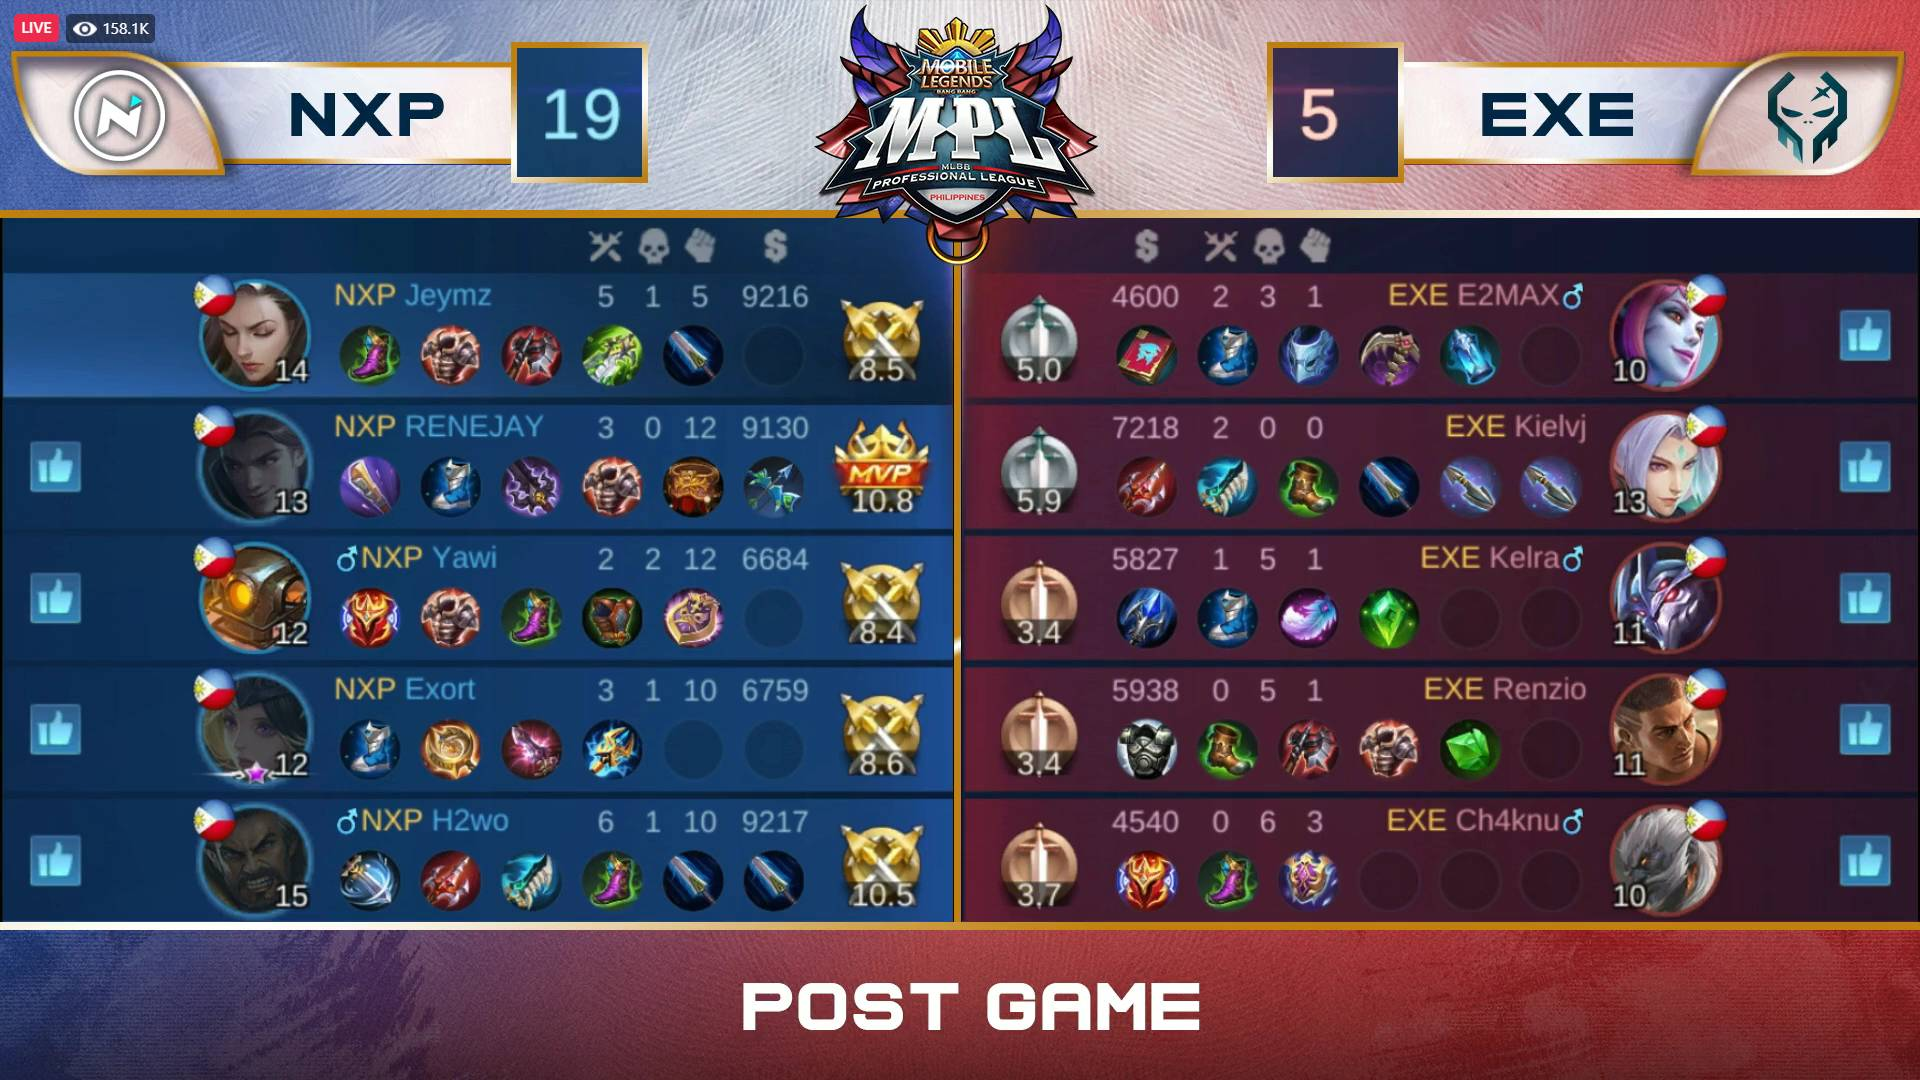 MPL-PH-7-Execration-def-NXP-Game-2 Renzio's Paquito lifts Execration past NexPlay, creates logjam in MPL PH Group B Uncategorized  - philippine sports news